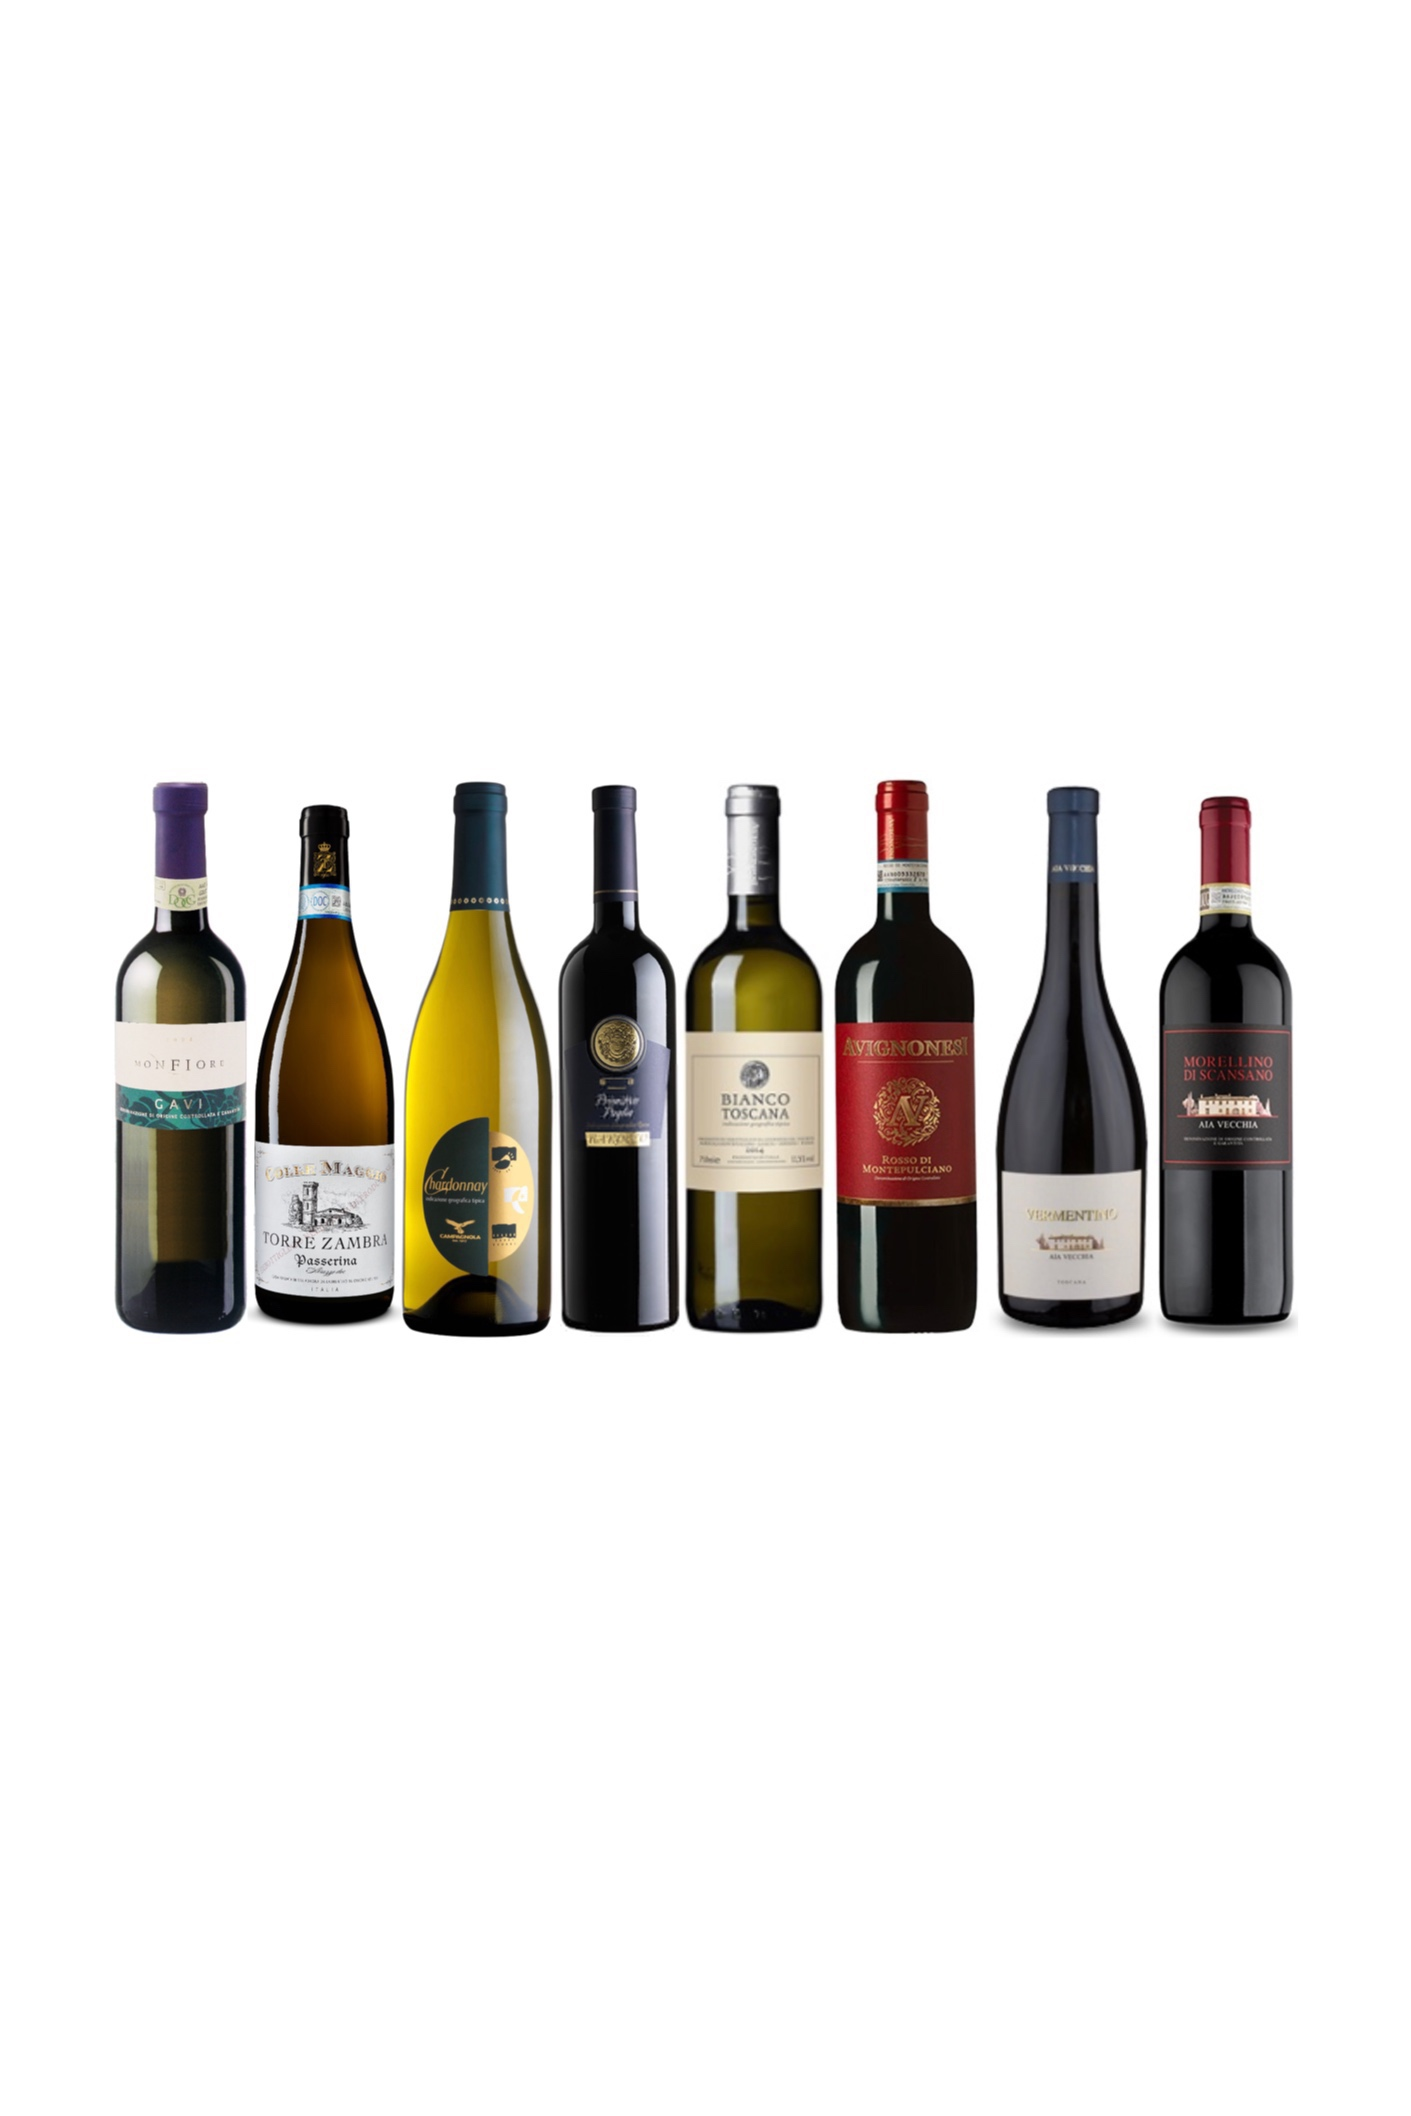 Pick any 4 Quality Italian Red and White Wine at only $268 and enjoys our special offer with a free wine Chiller (worth $199)